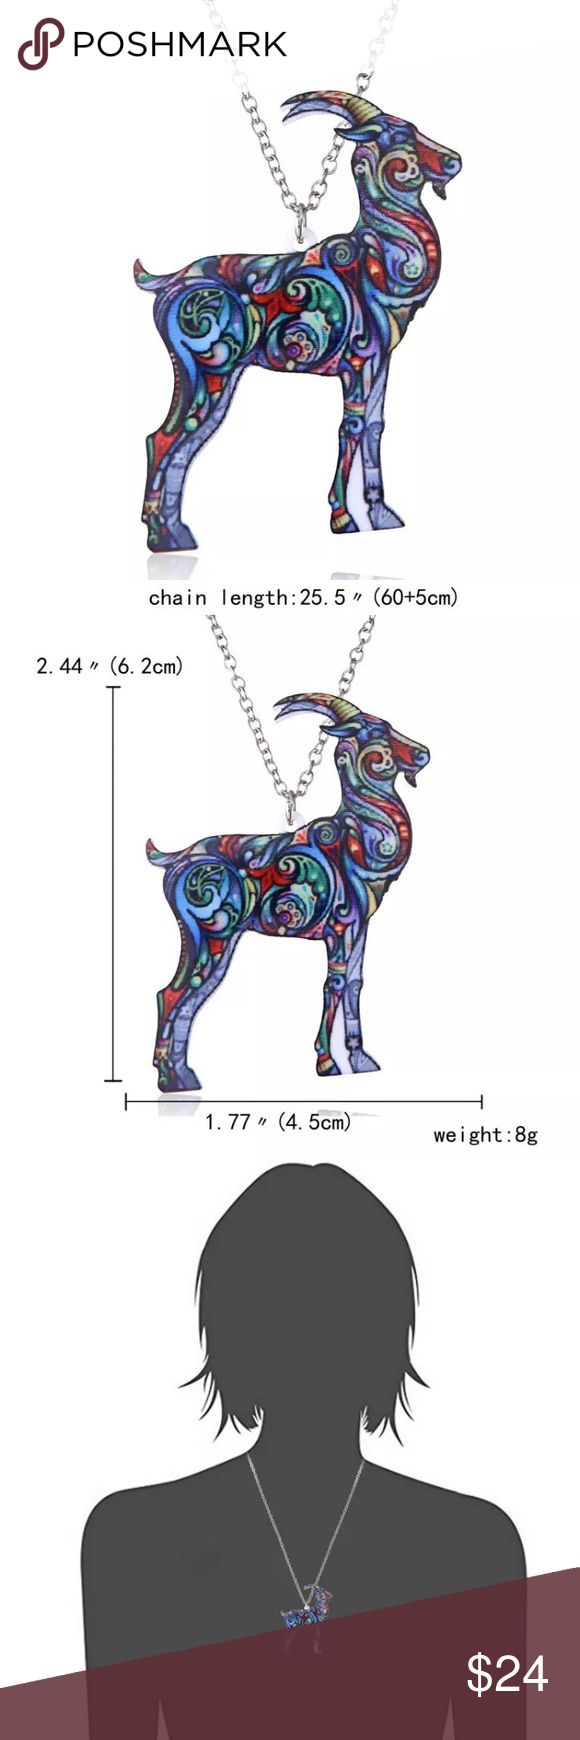 "COLORFUL GOAT PENDANT LONG SWEATER NECKLACE COLORFUL GOAT PENDANT LONG SWEATER NECKLACE  100% Brand New & High Quality.  Material: Hypoallergenic Nickel Free Alloy + Acrylic   Size: Length Approx. 24"" + 1.5"" extension  Pendant Approx. 2.44"" x 1.77"" Jewelry Necklaces"